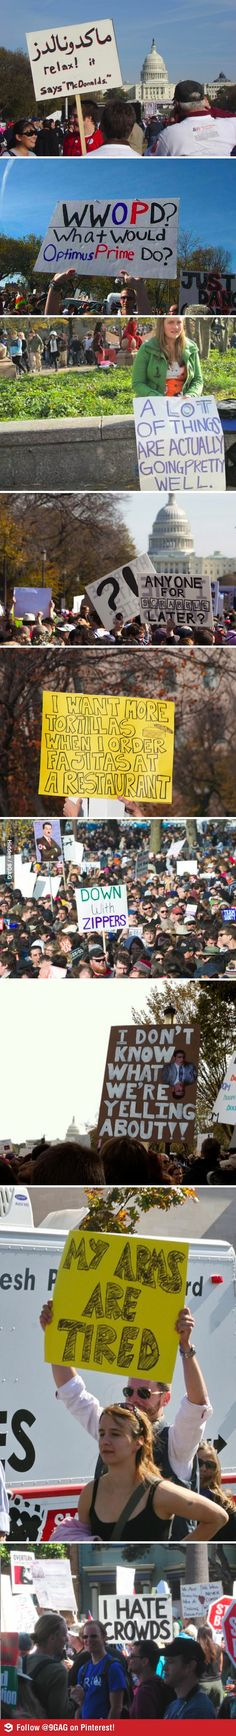 haha These look like they should have been at The Daily Show's Rally for Sanity. ;)